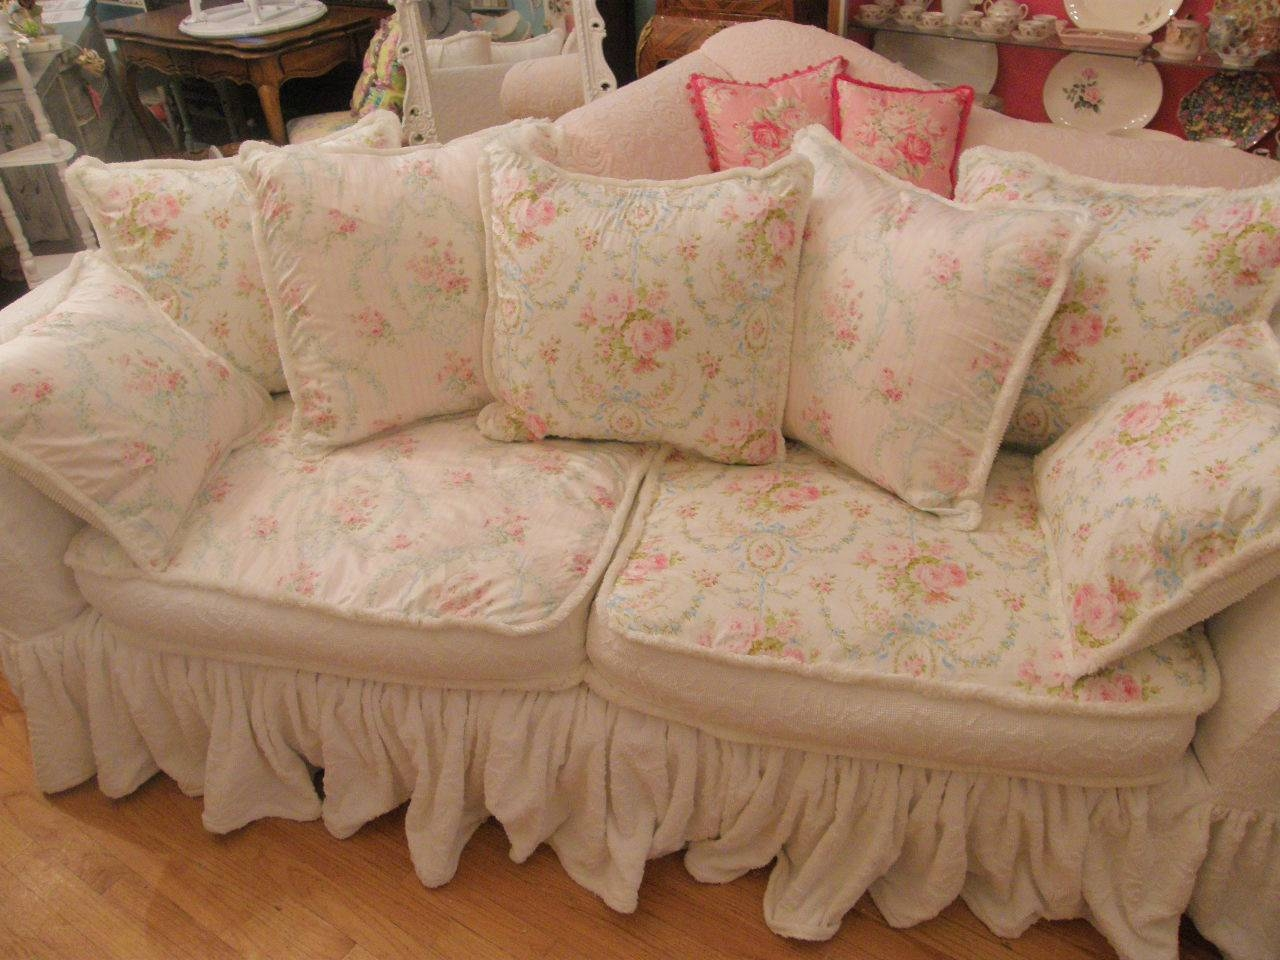 Shabby Chic Sofa Slipcovers 47 With Shabby Chic Sofa Slipcovers Pertaining To Shabby Chic Sofa Slipcovers (View 10 of 15)